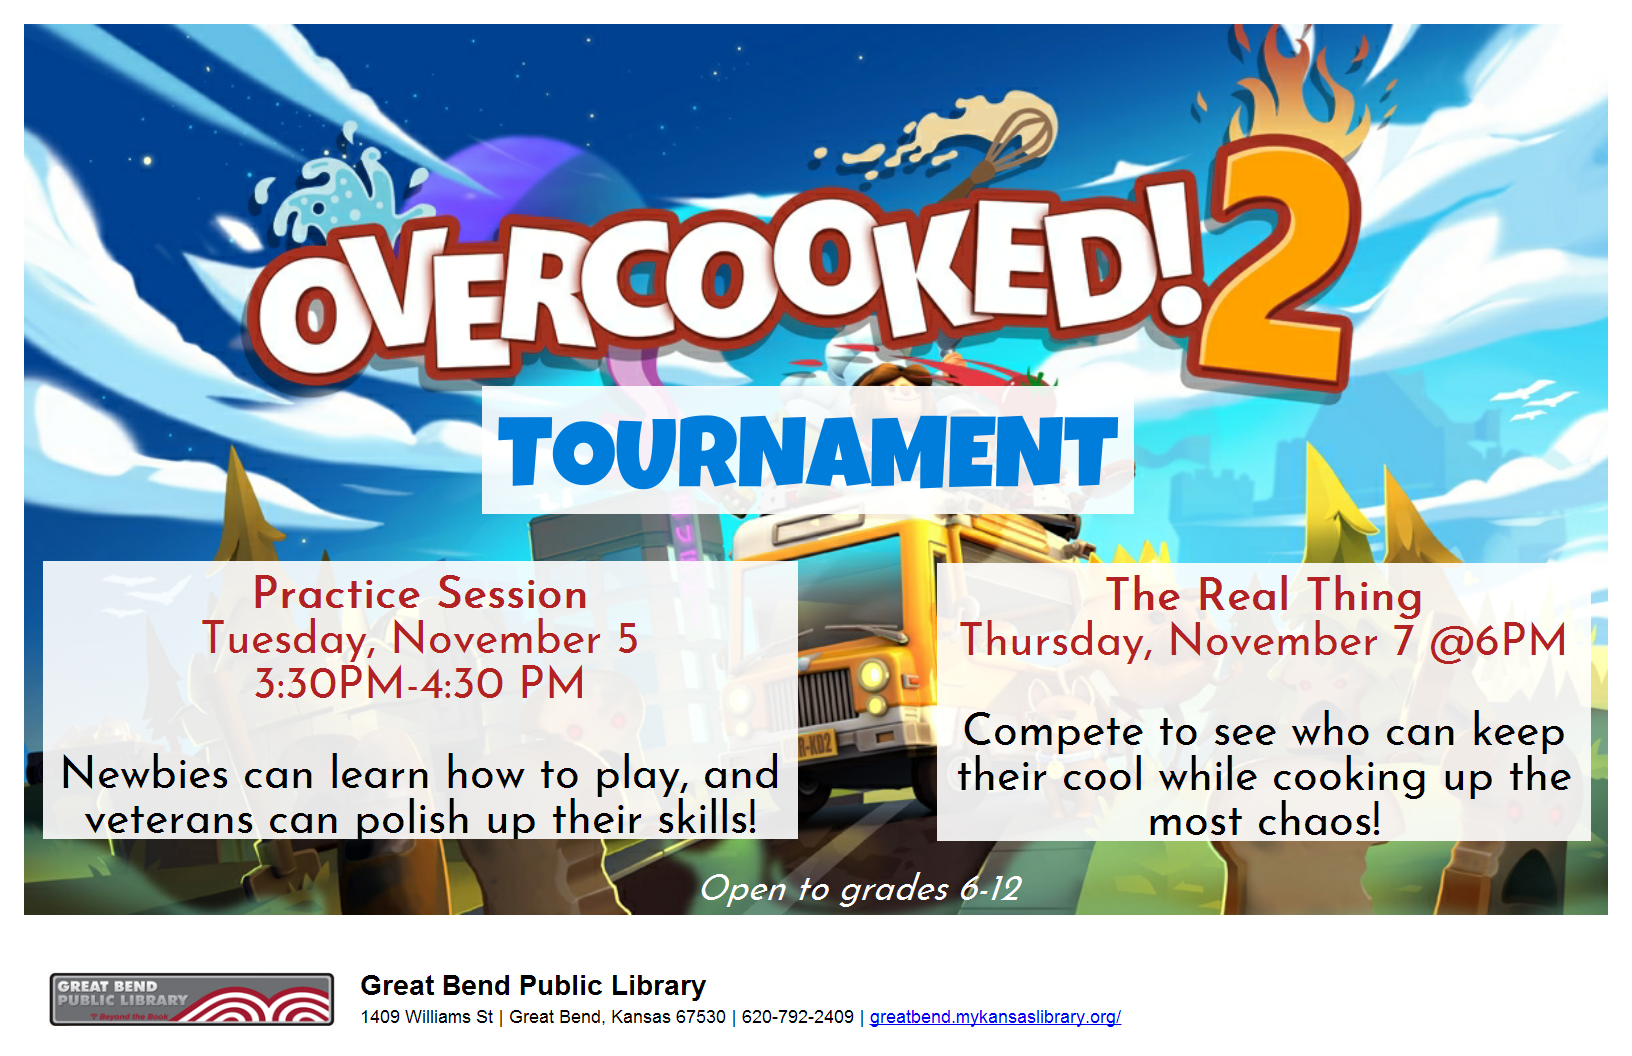 Overcooked! 2 Tournament